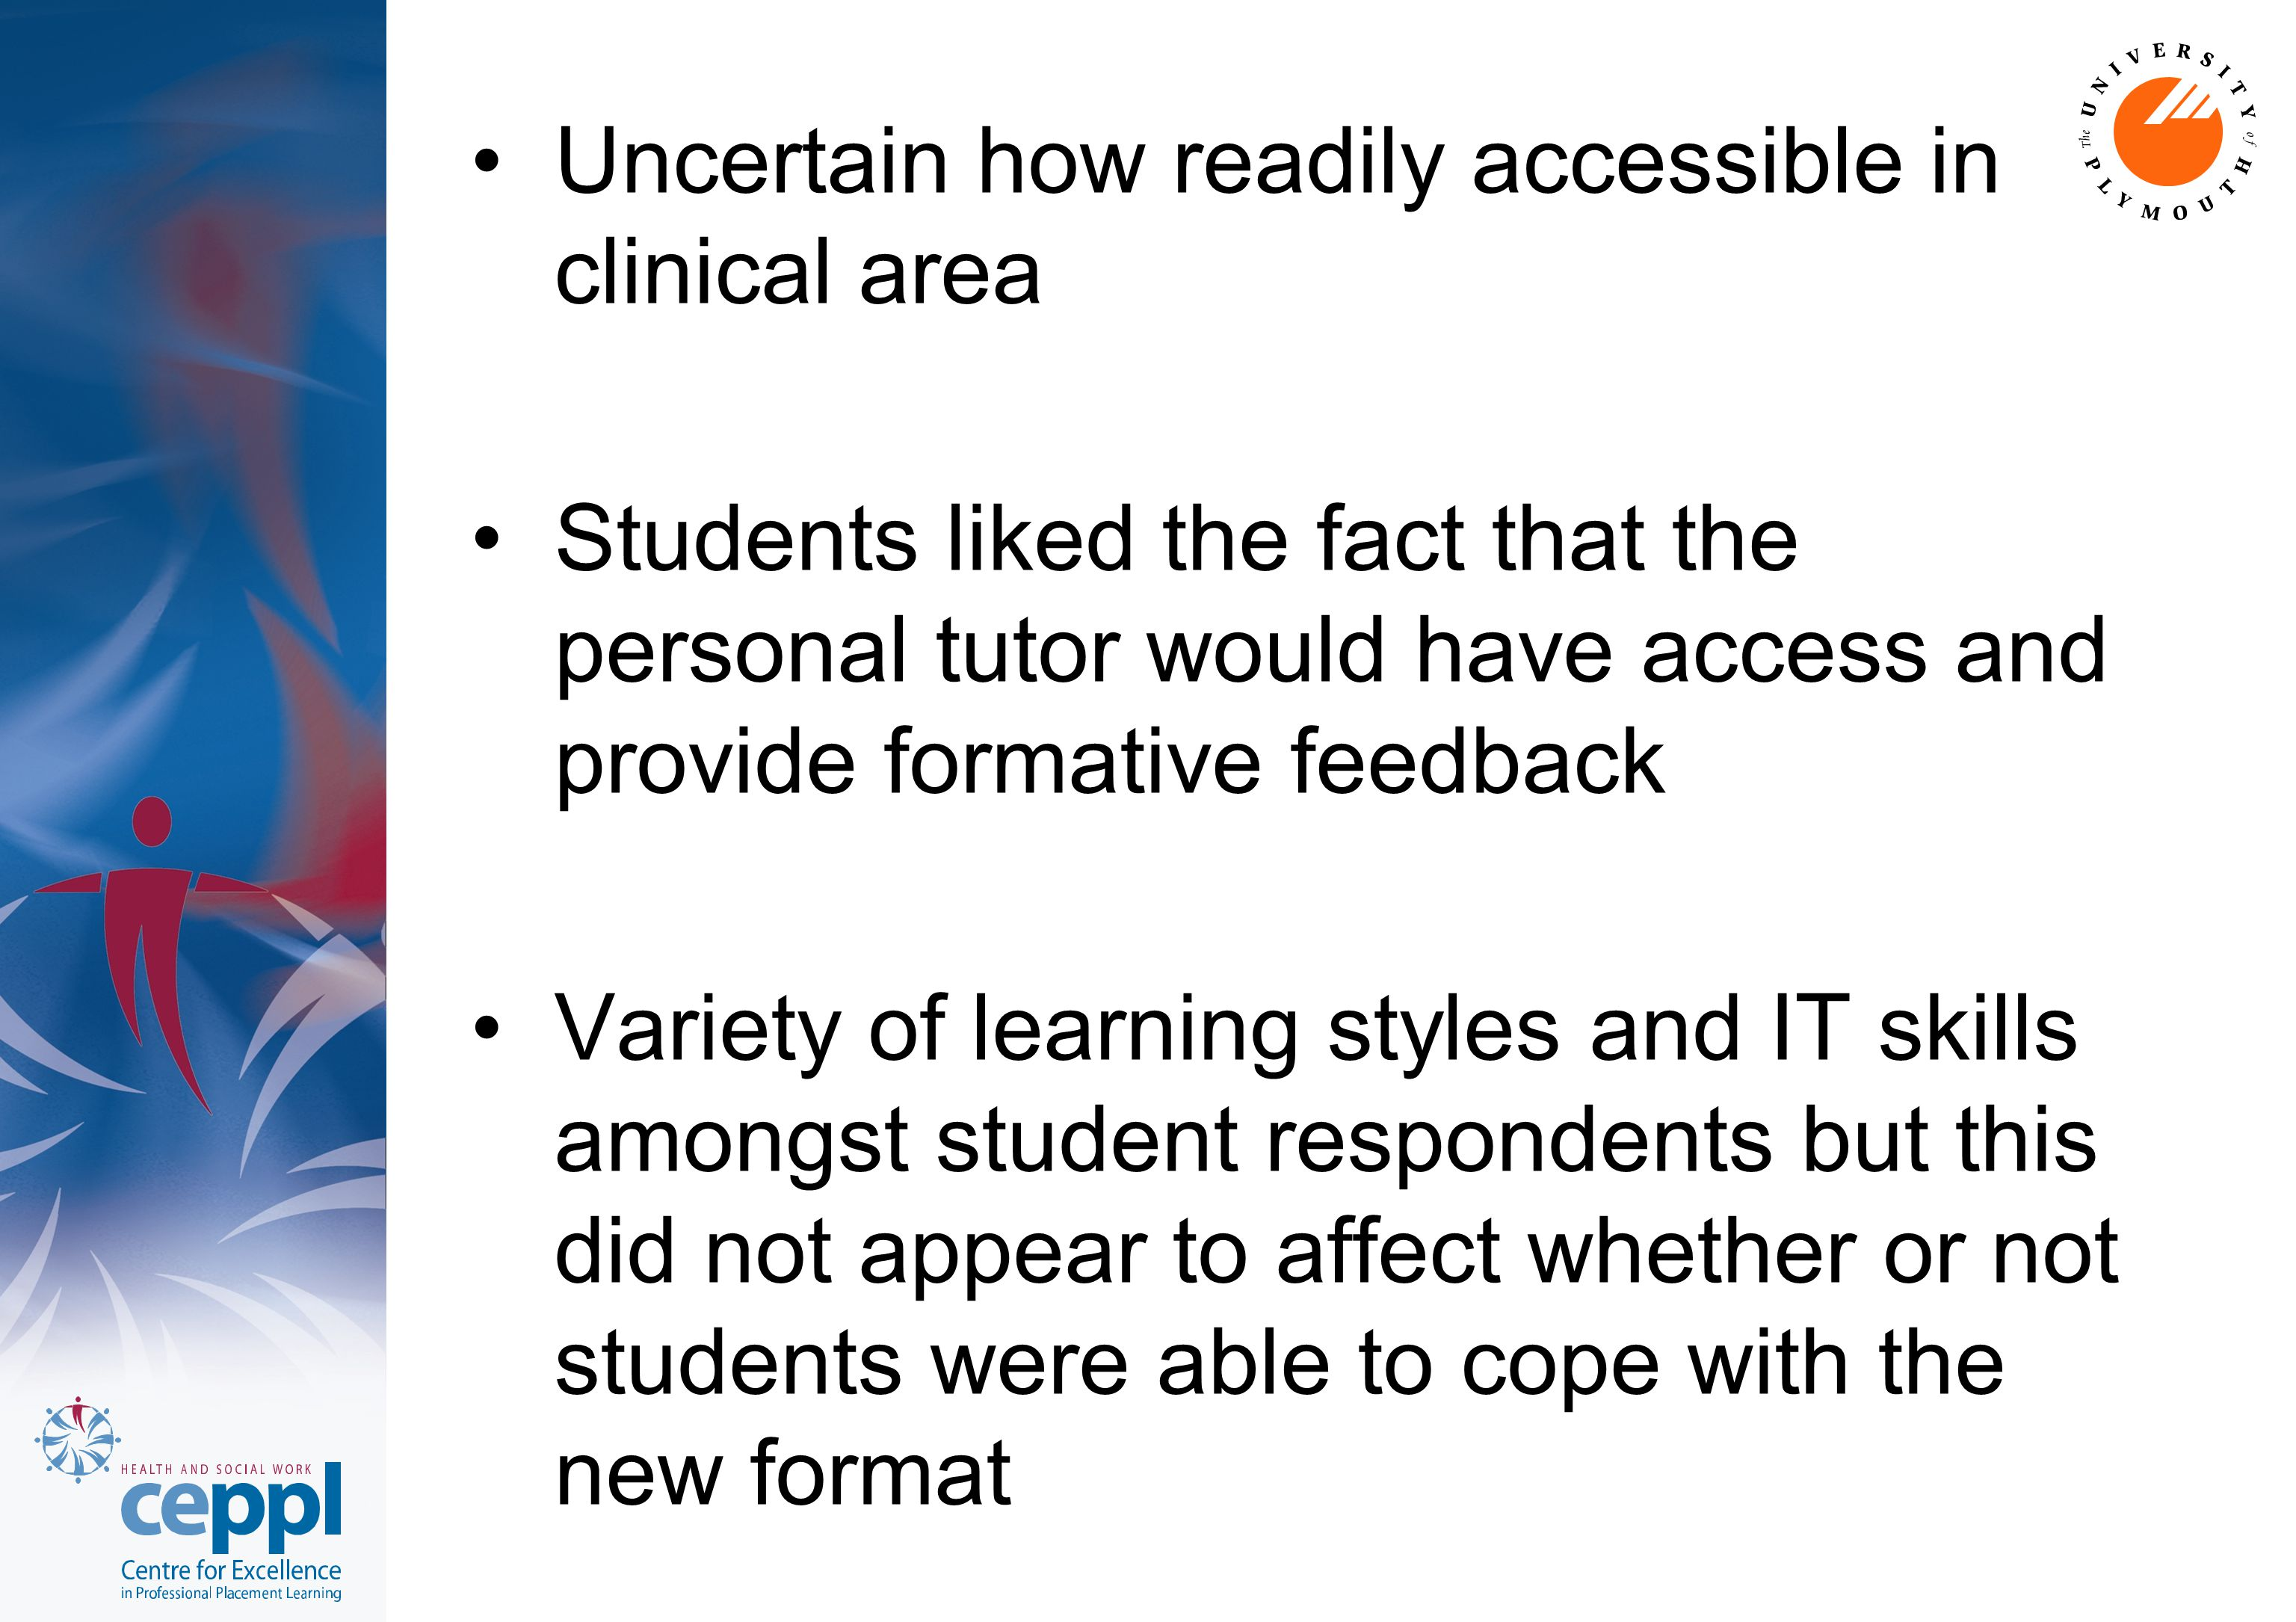 Uncertain how readily accessible in clinical area Students liked the fact that the personal tutor would have access and provide formative feedback Variety of learning styles and IT skills amongst student respondents but this did not appear to affect whether or not students were able to cope with the new format